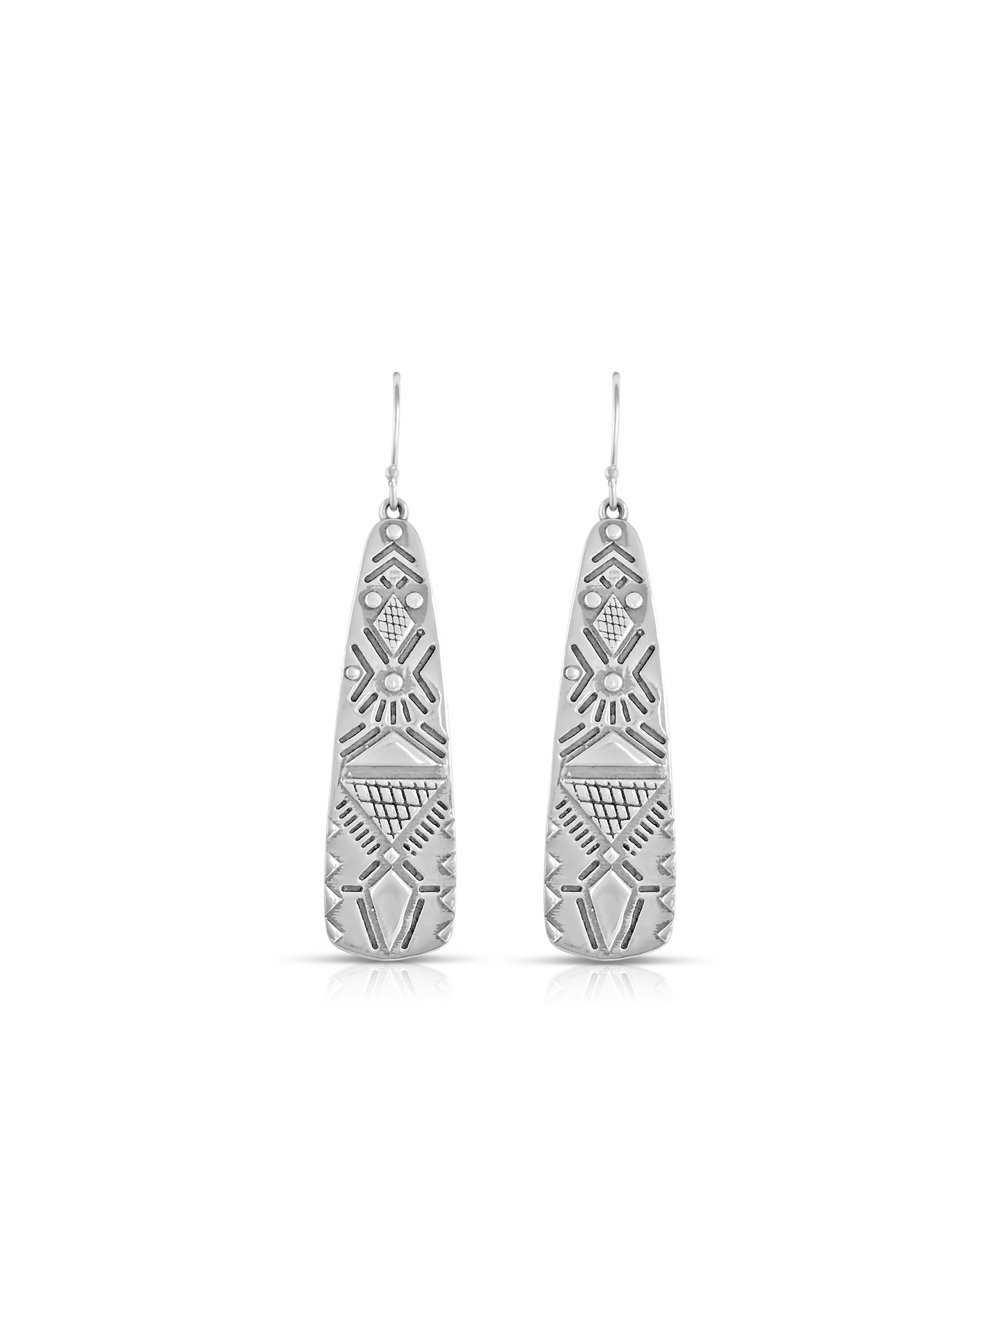 Sierra Winter Jewelry Kaw Earrings Front Silver.jpg